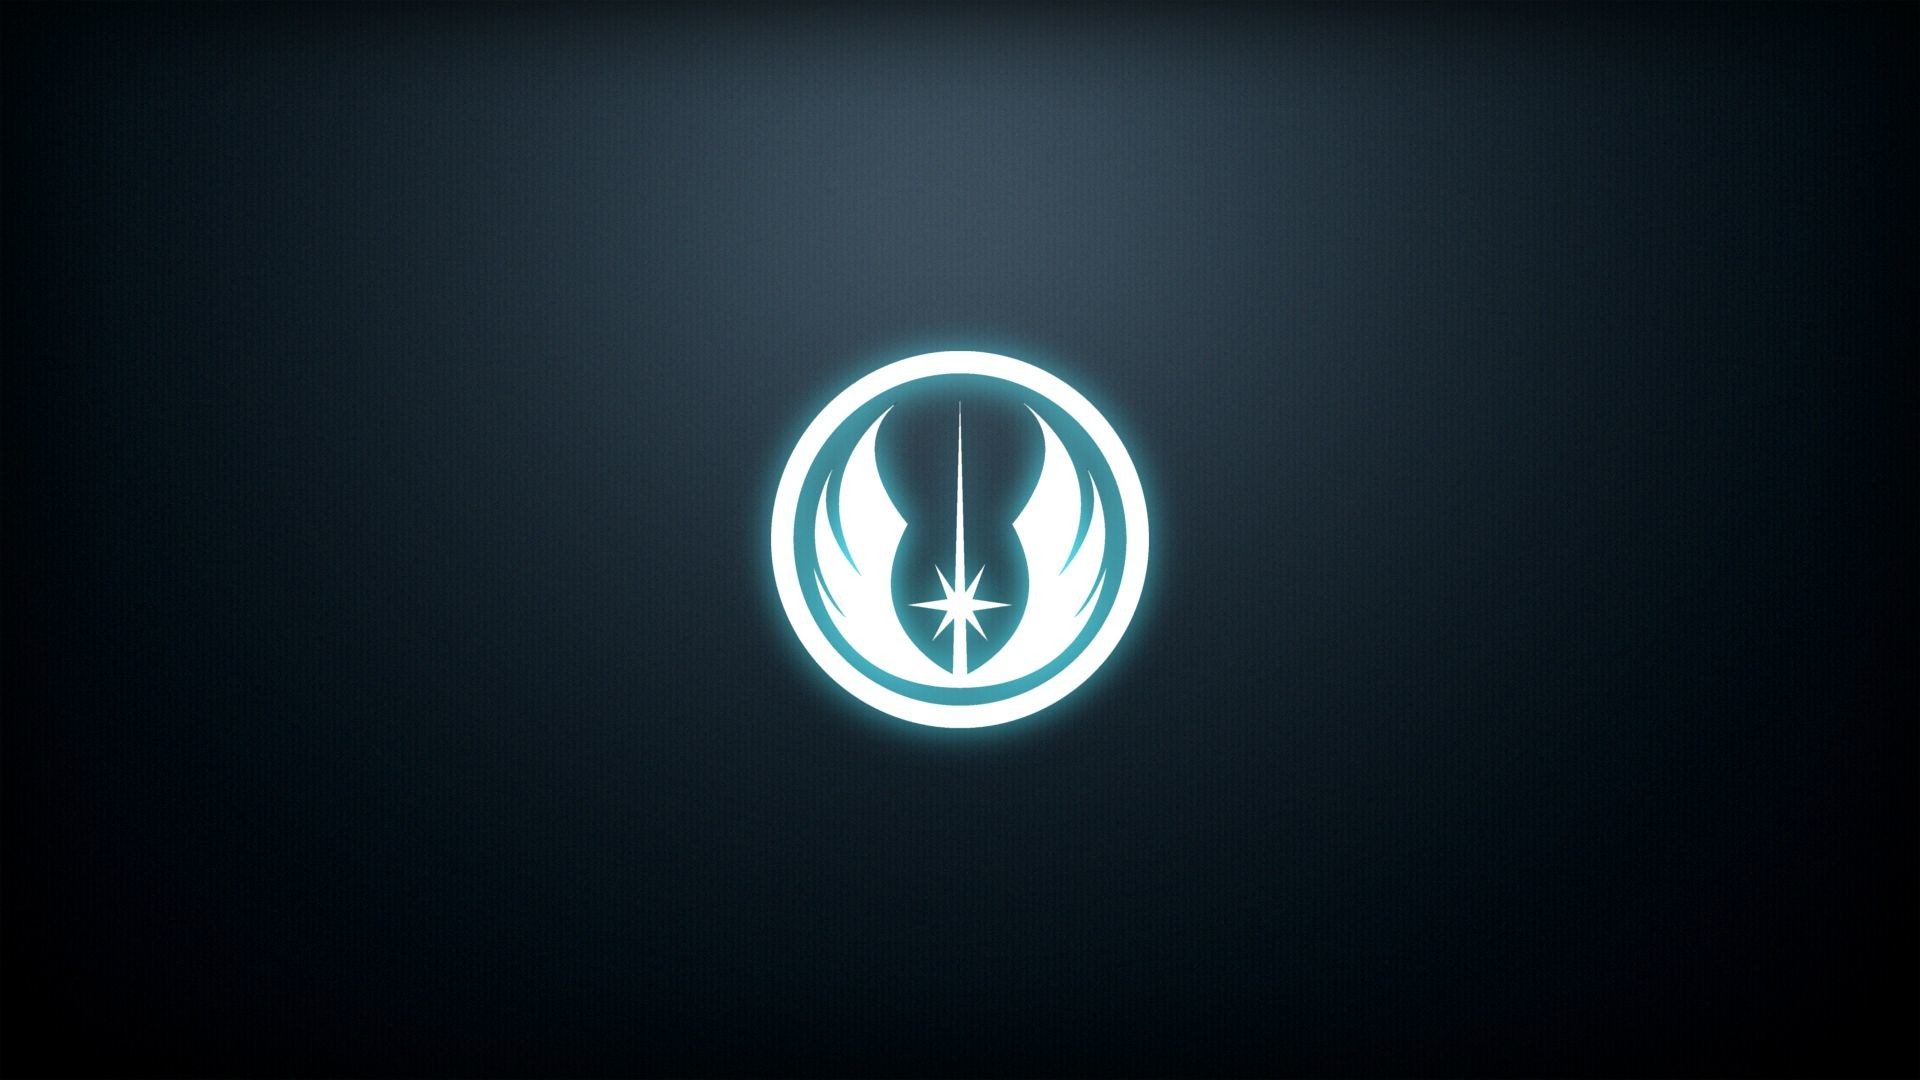 Jedi order wallpaper 67 images 1920x1080 a wallpaper you guys might like the jedi order emblem ill biocorpaavc